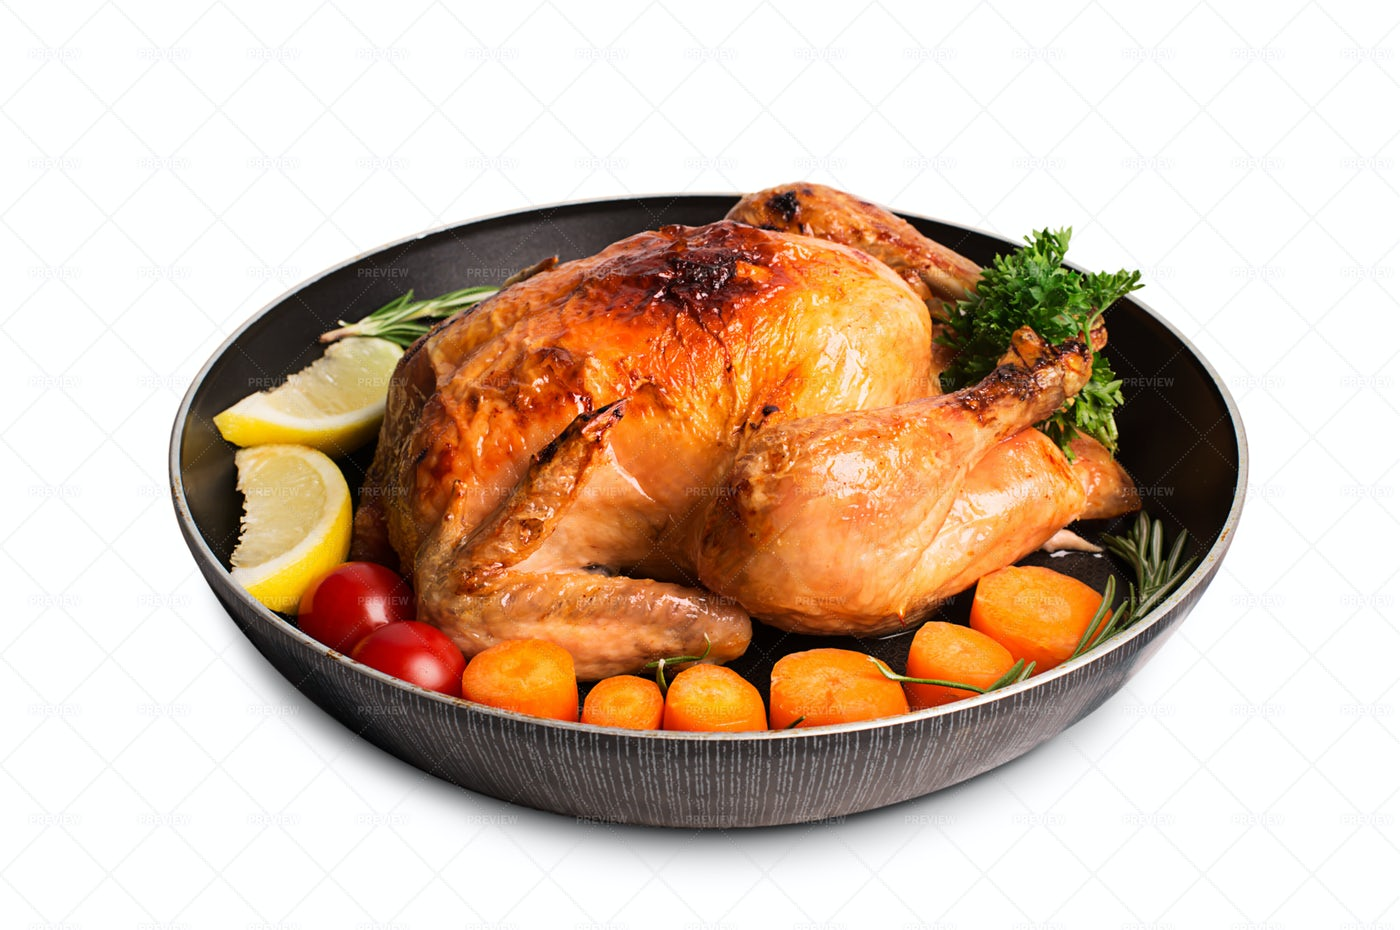 Chicken And Vegetables: Stock Photos